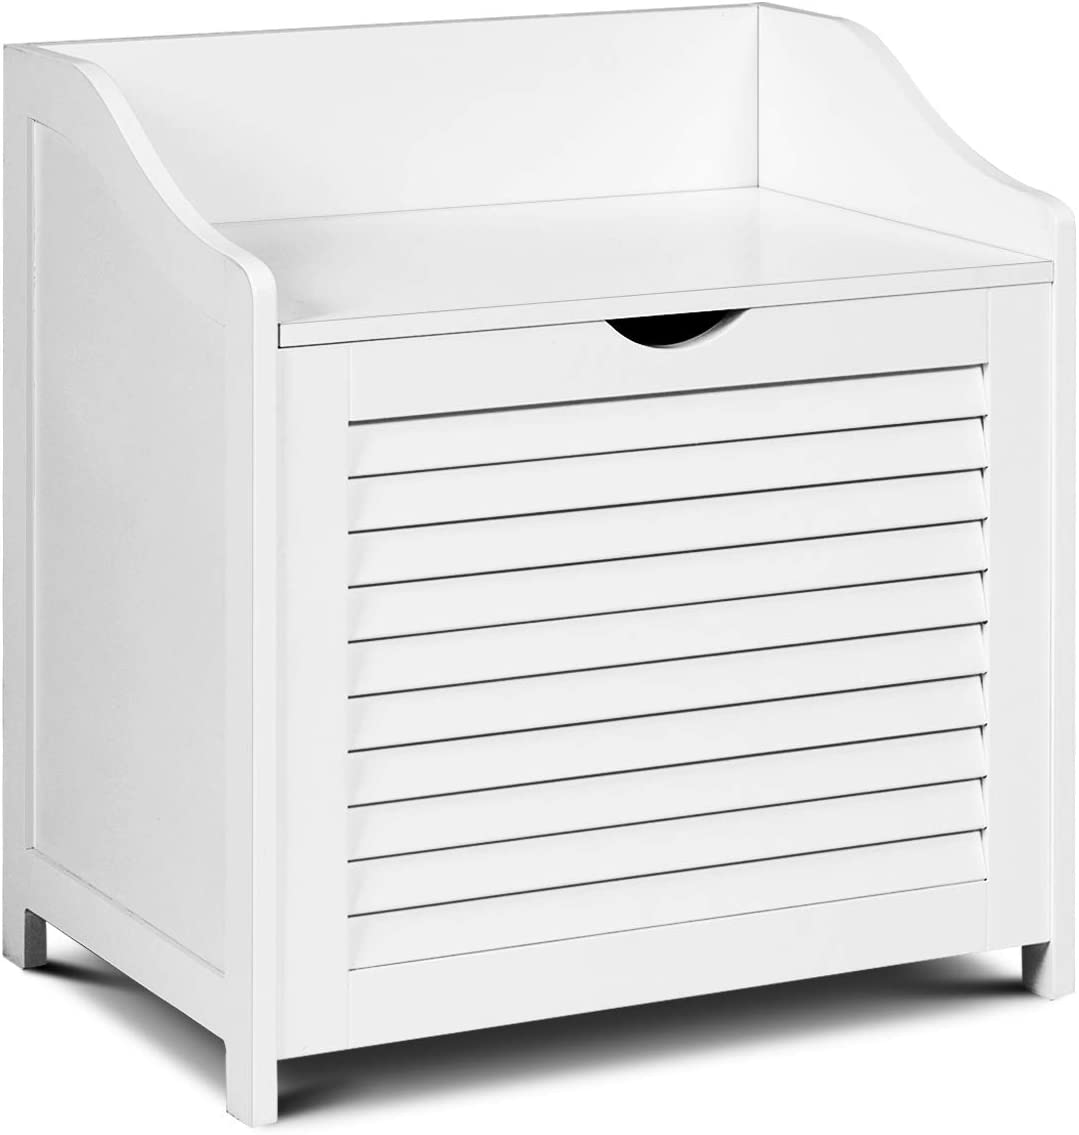 Tangkula Laundry Hamper Cabinet, Laundry Sorter Chest with Removable & Washable Cotton Liner, Laundry Collector with Lid & Louver Design, Single Load Laundry Basket Bag (White)